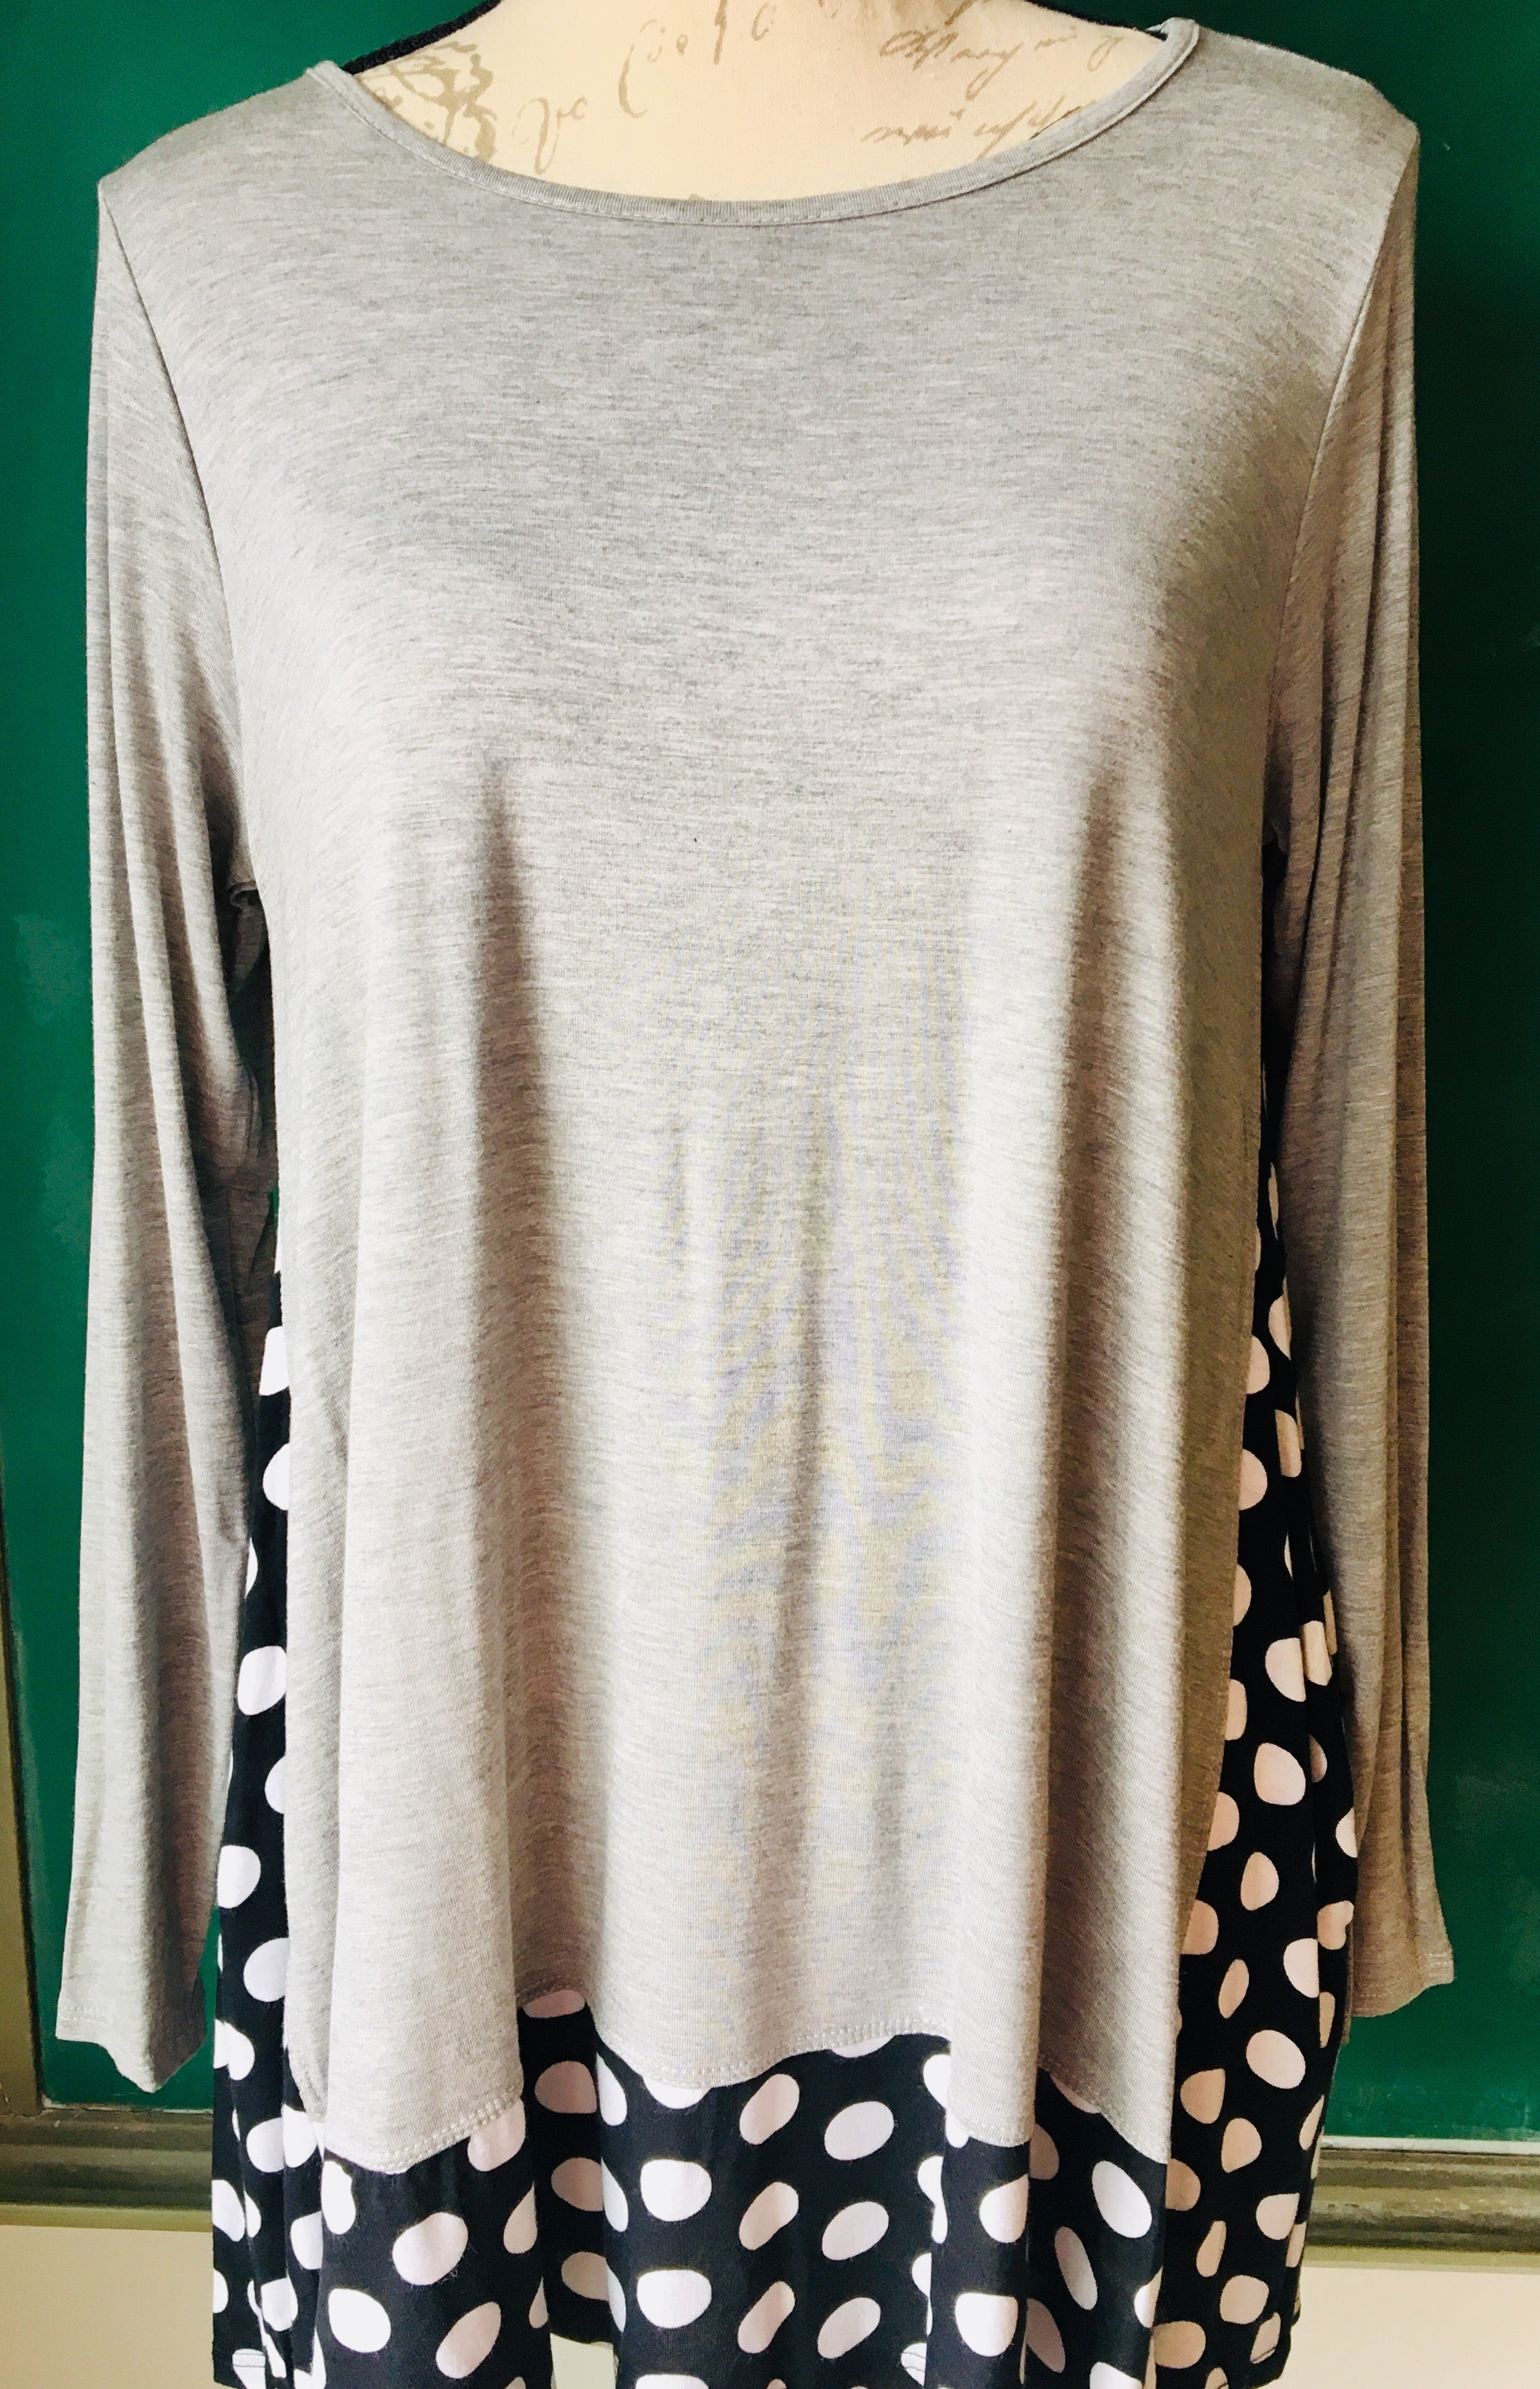 Polka Dotted Gray & Black Tunic WITH POCKETS!